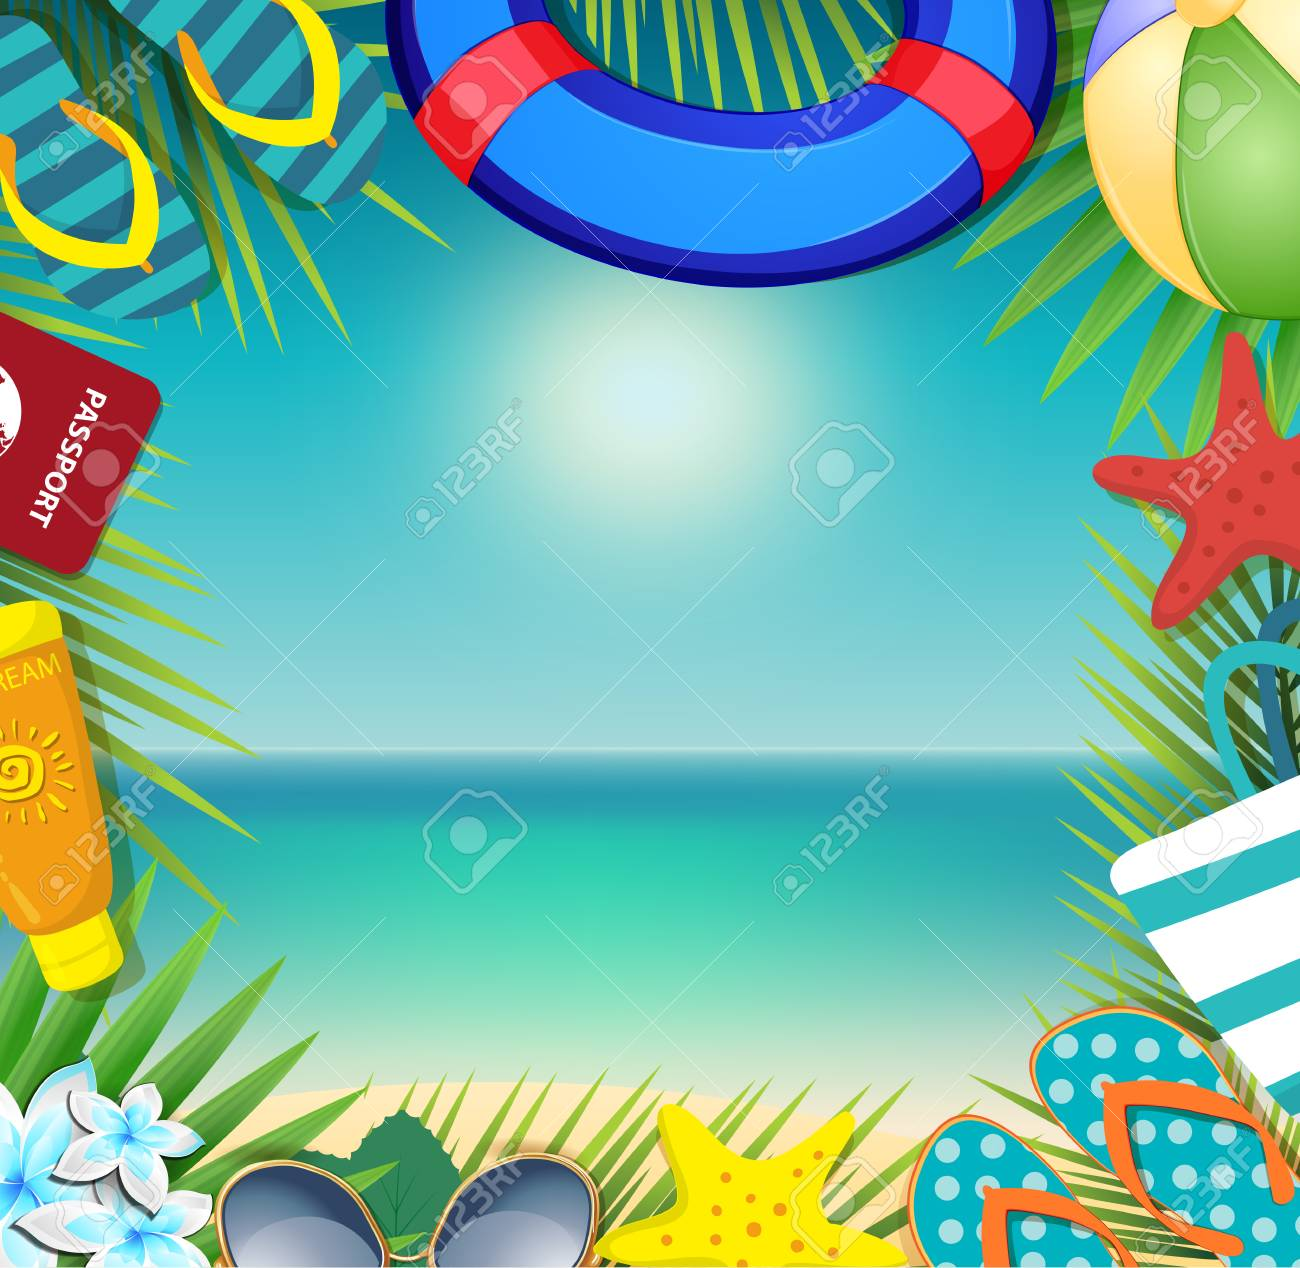 ce5c4f5308b Top view of summer holidays border frame template with copy space. Vacation  tropical beach accessories